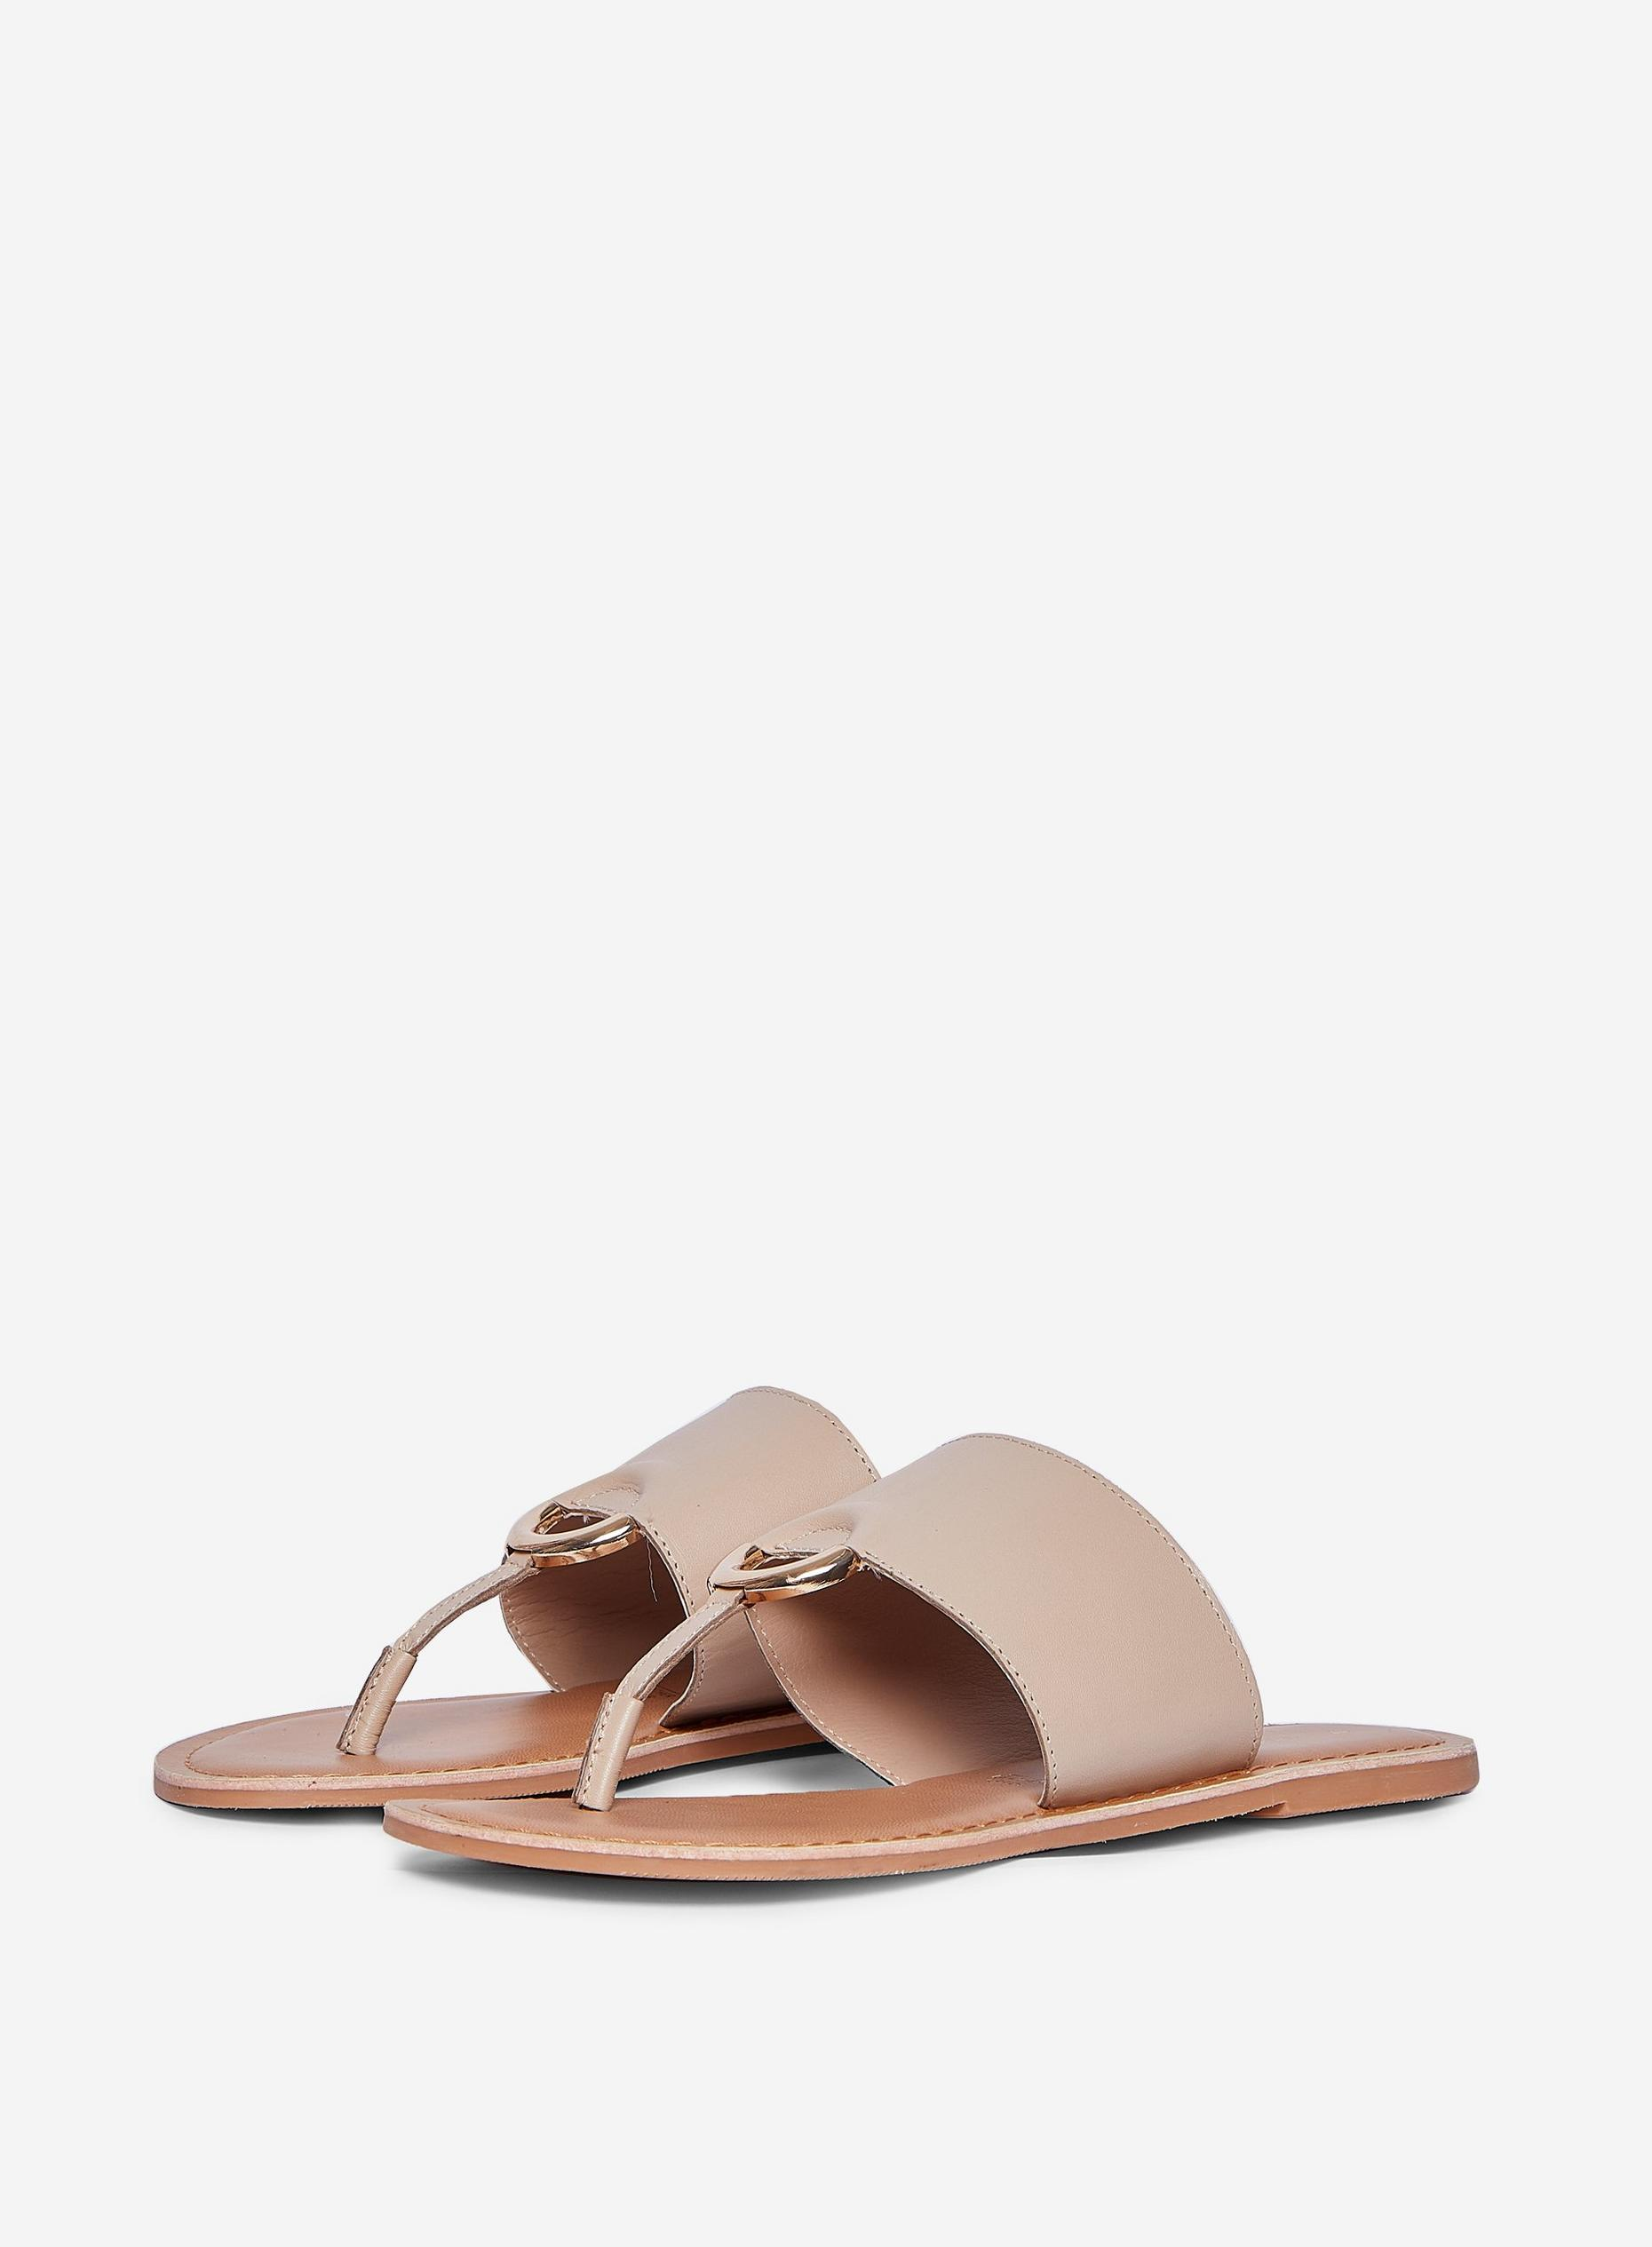 Beige Jenner Leather Sandals